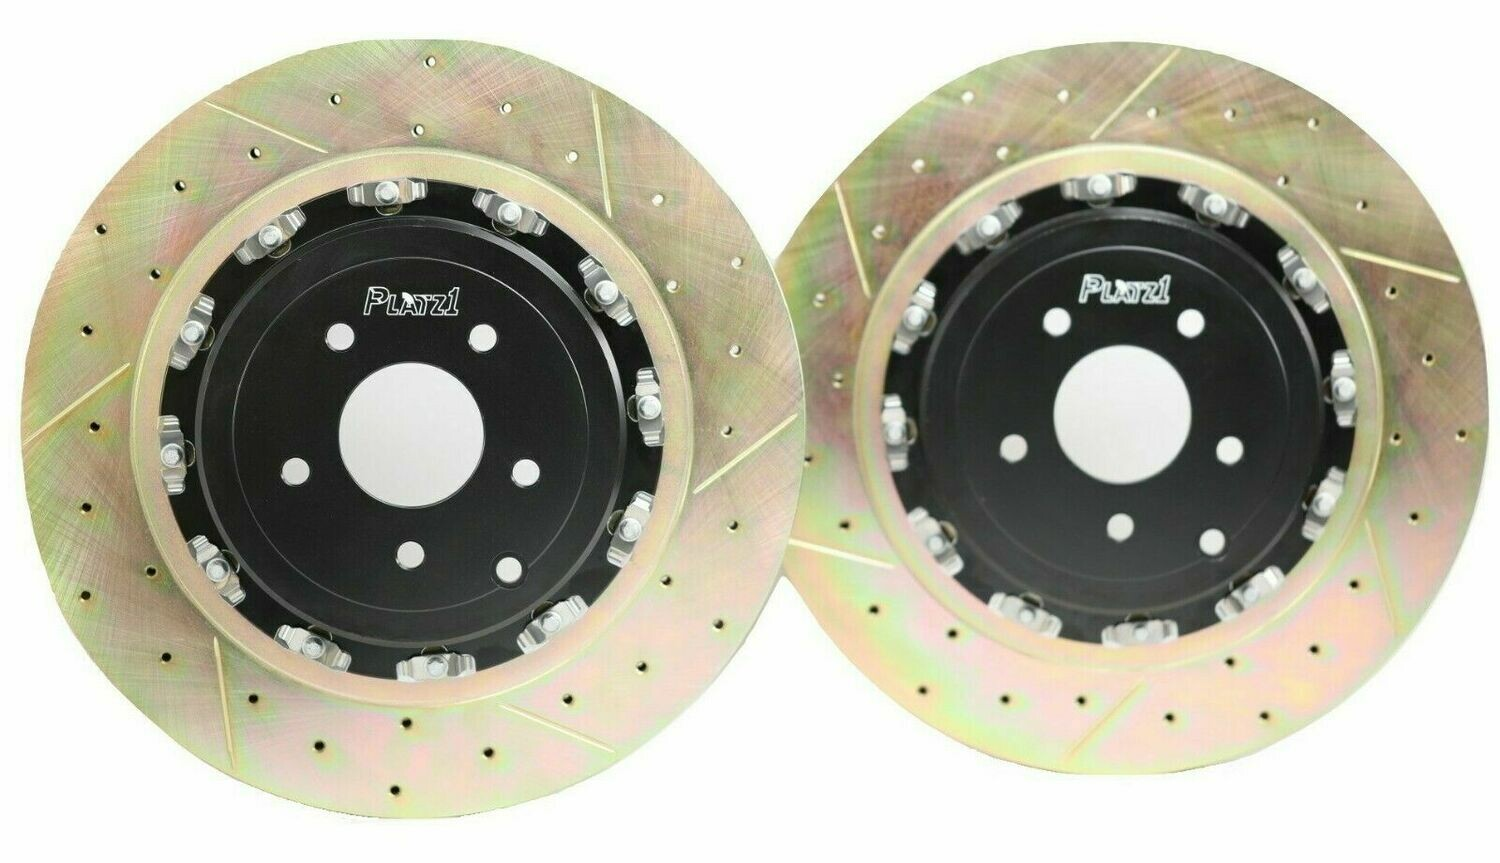 Platz1 380mm FRONT 2-Piece Floating Disc Brake Rotor Upgrade for Nissan GT-R R35